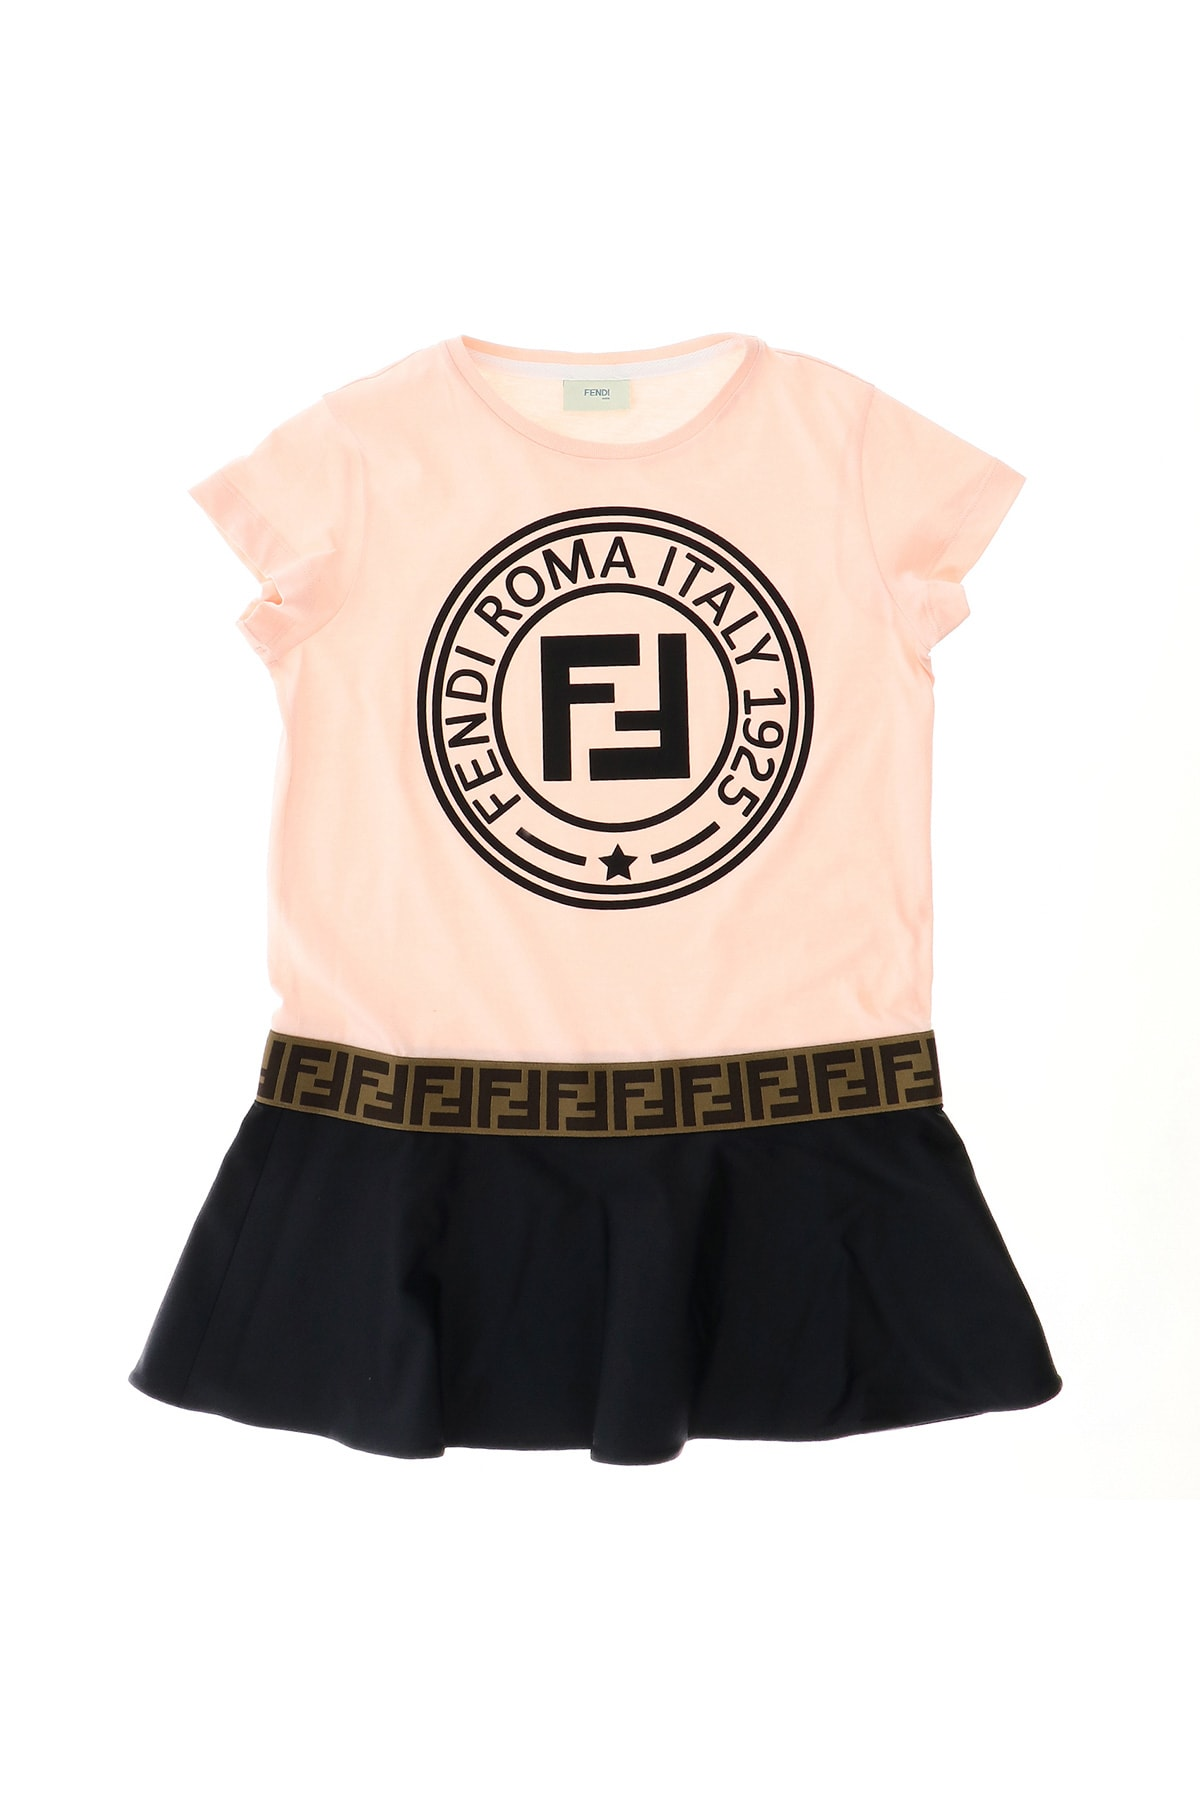 Fendi Fendi Stamp T-shirt Dress